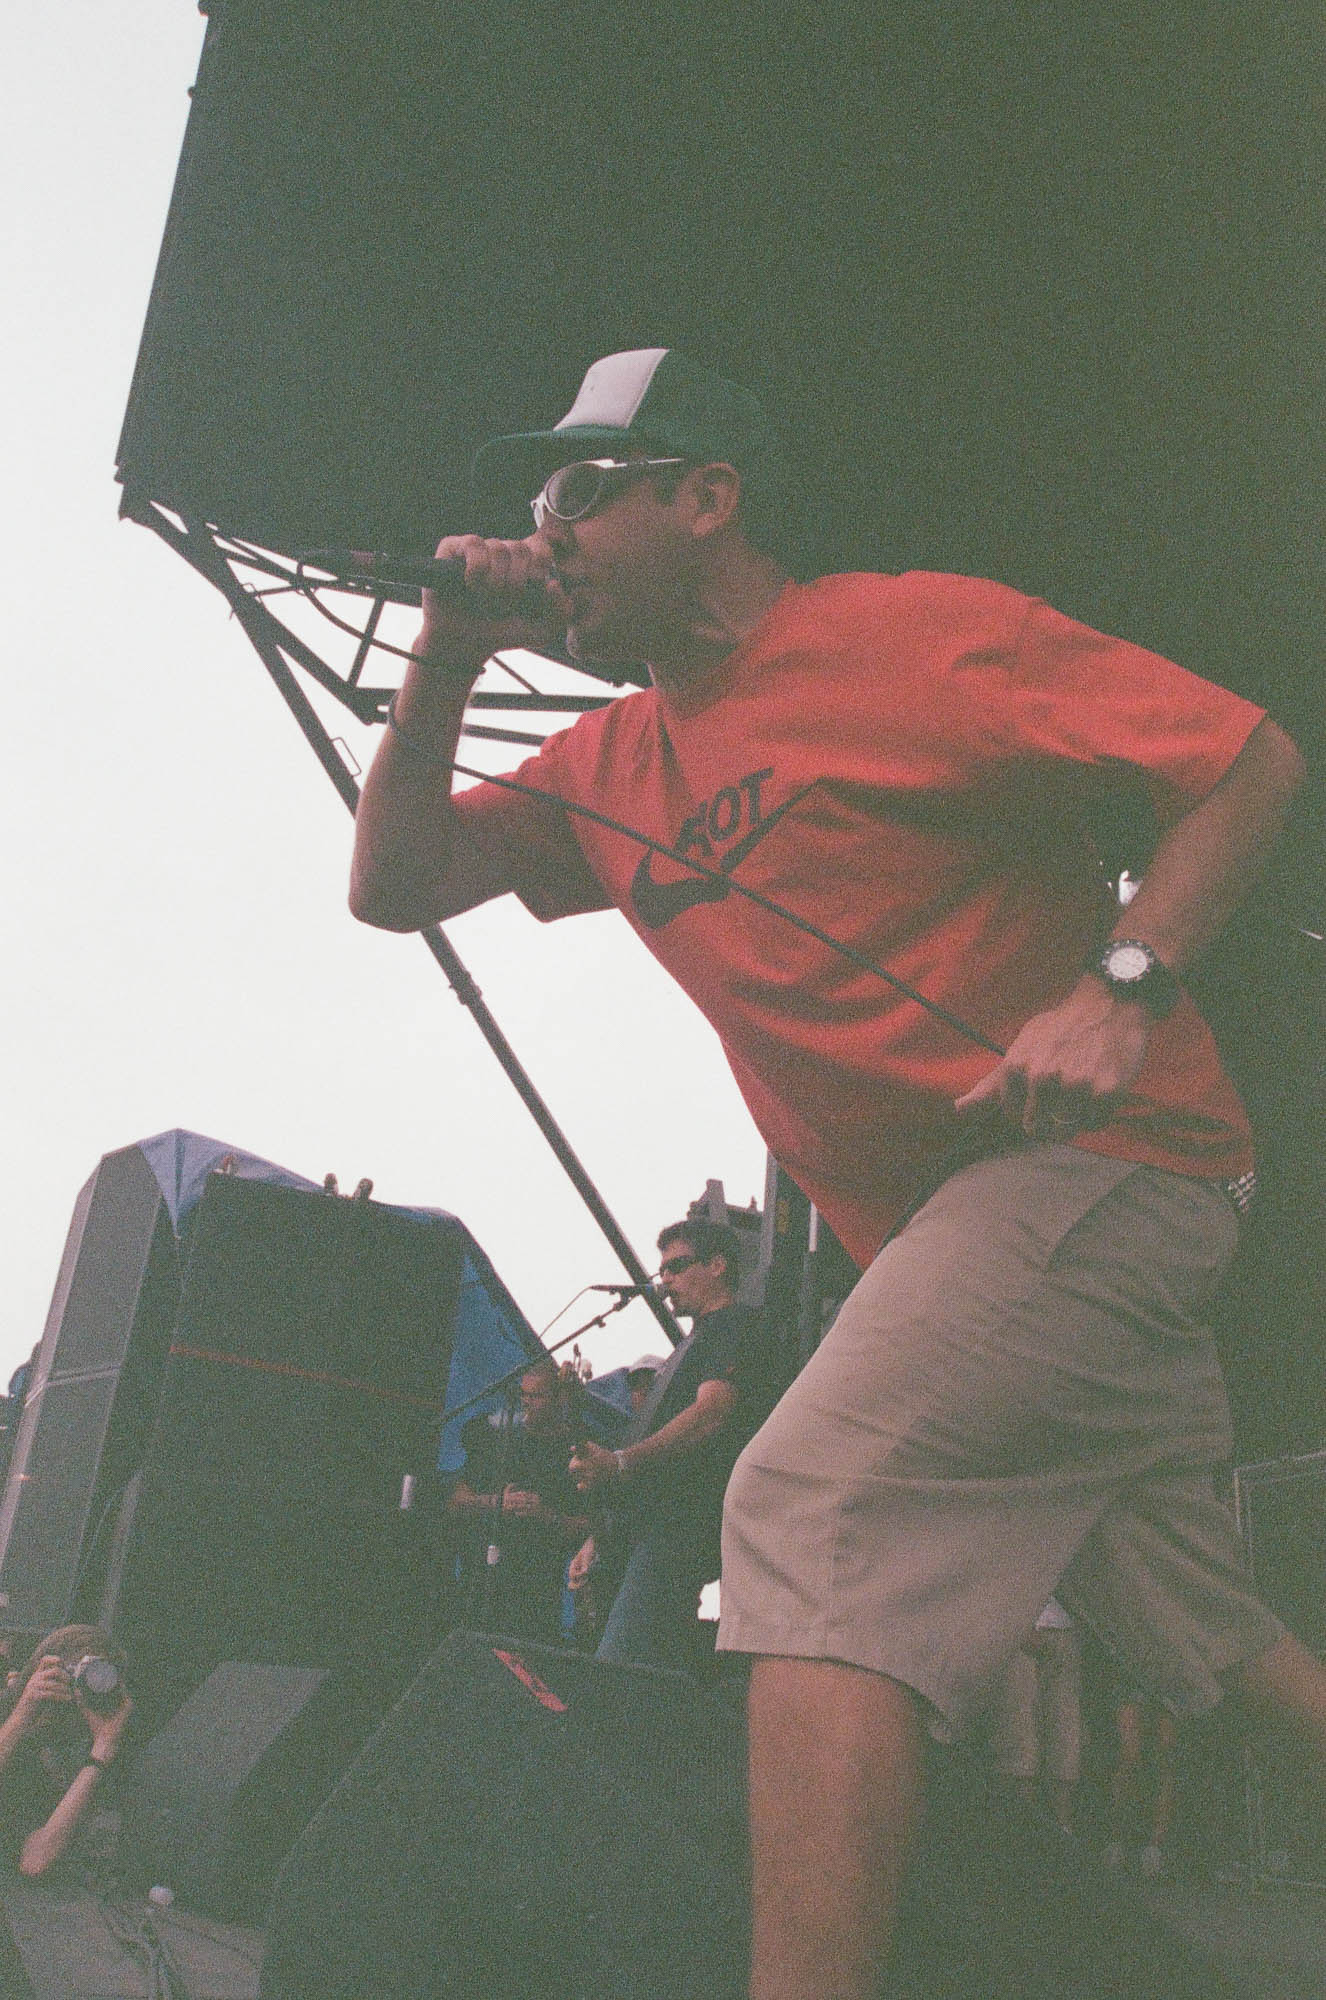 Pennywise at Warped Tour 2001